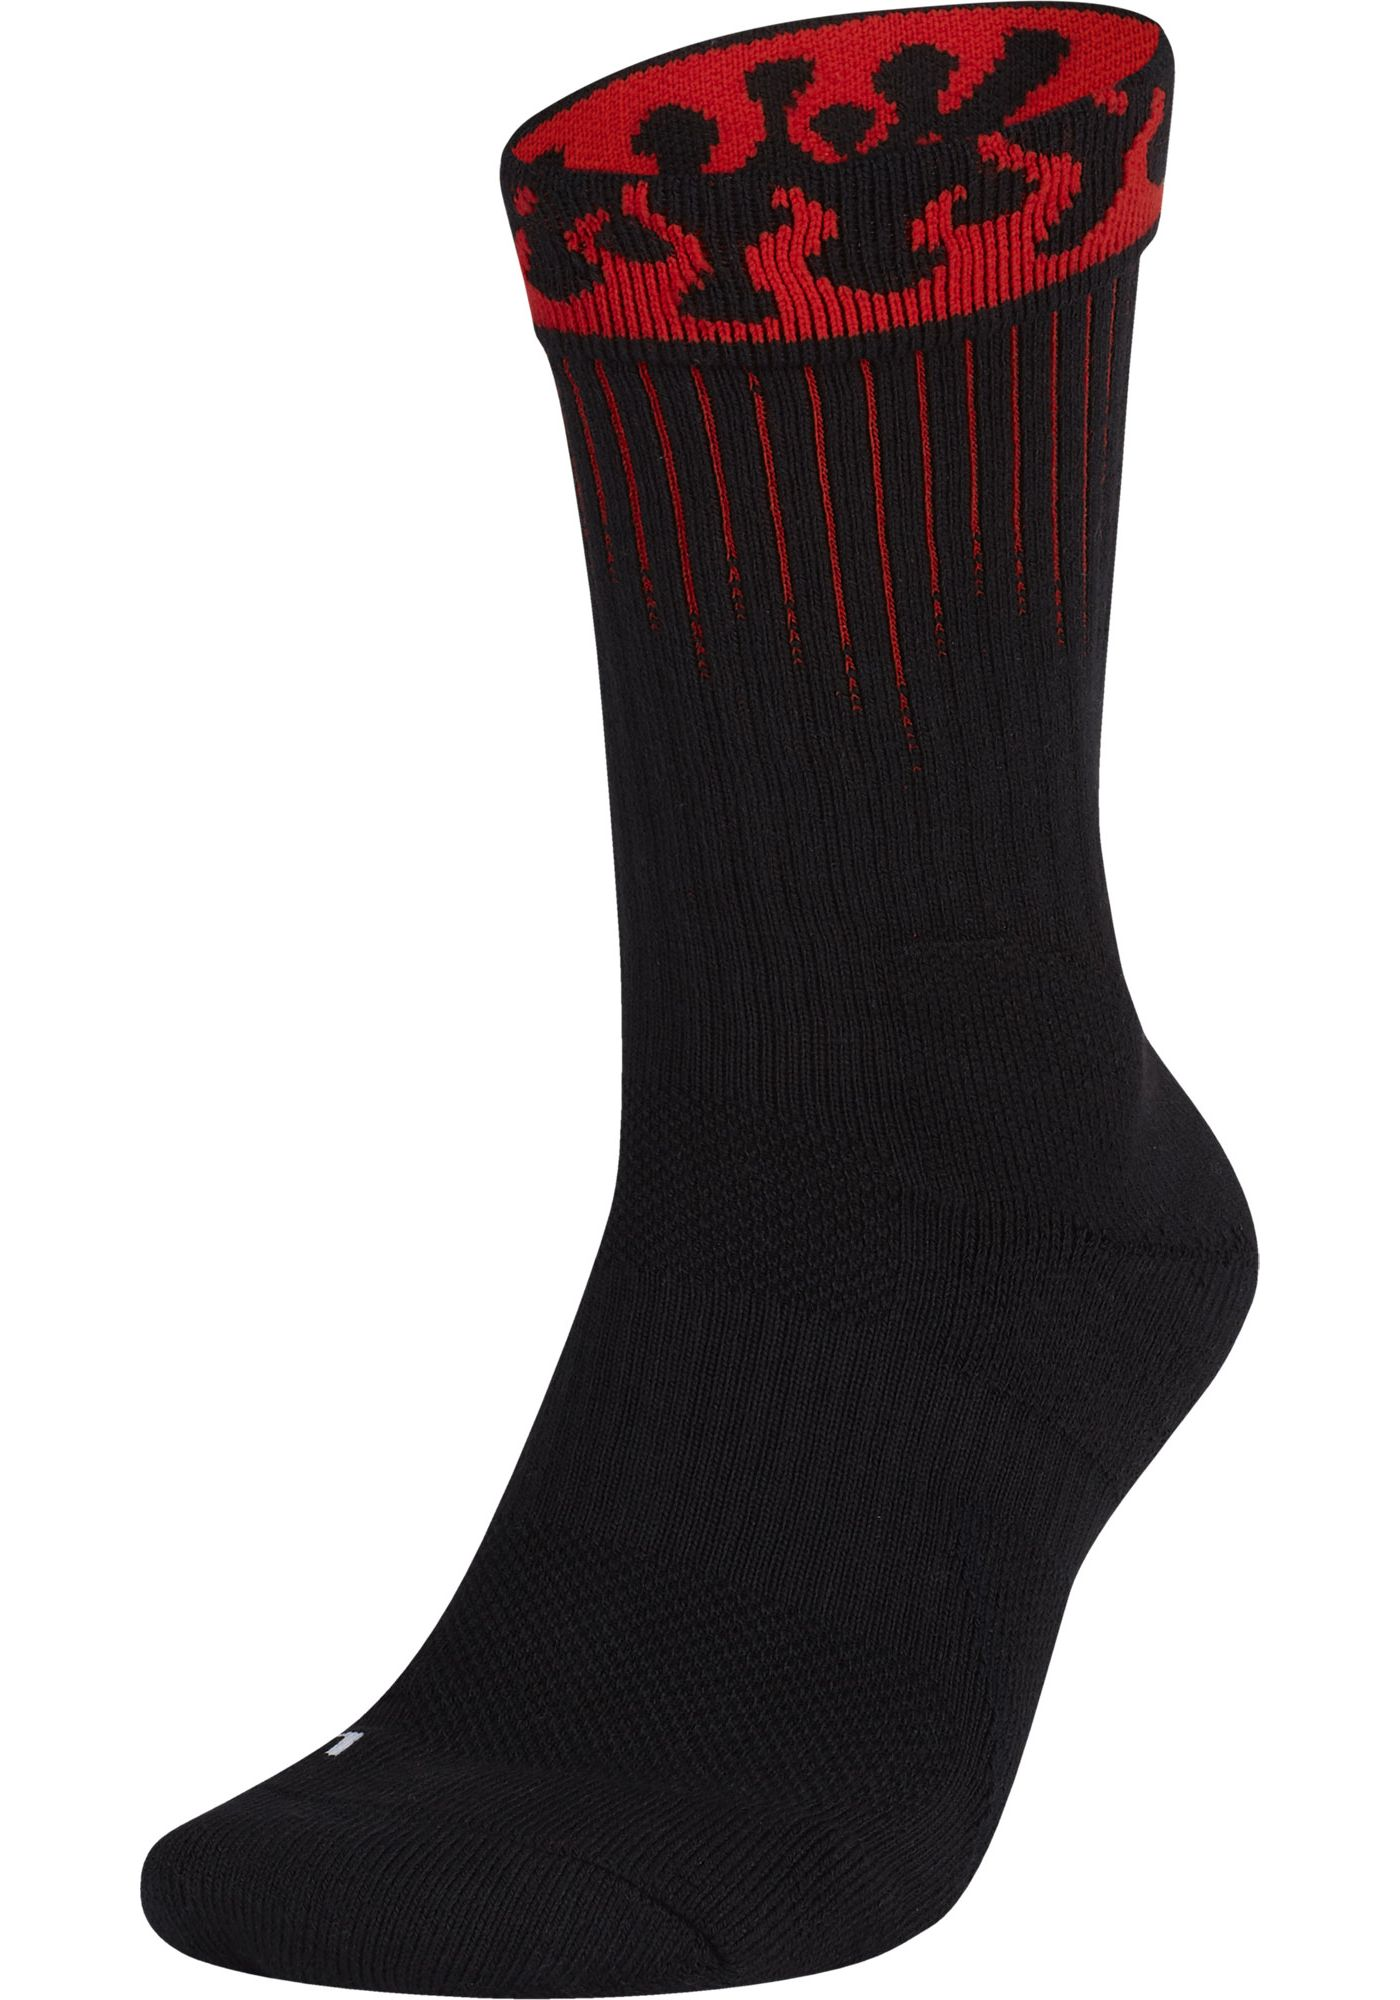 Nike Elite Fire Up Your Game Crew Socks